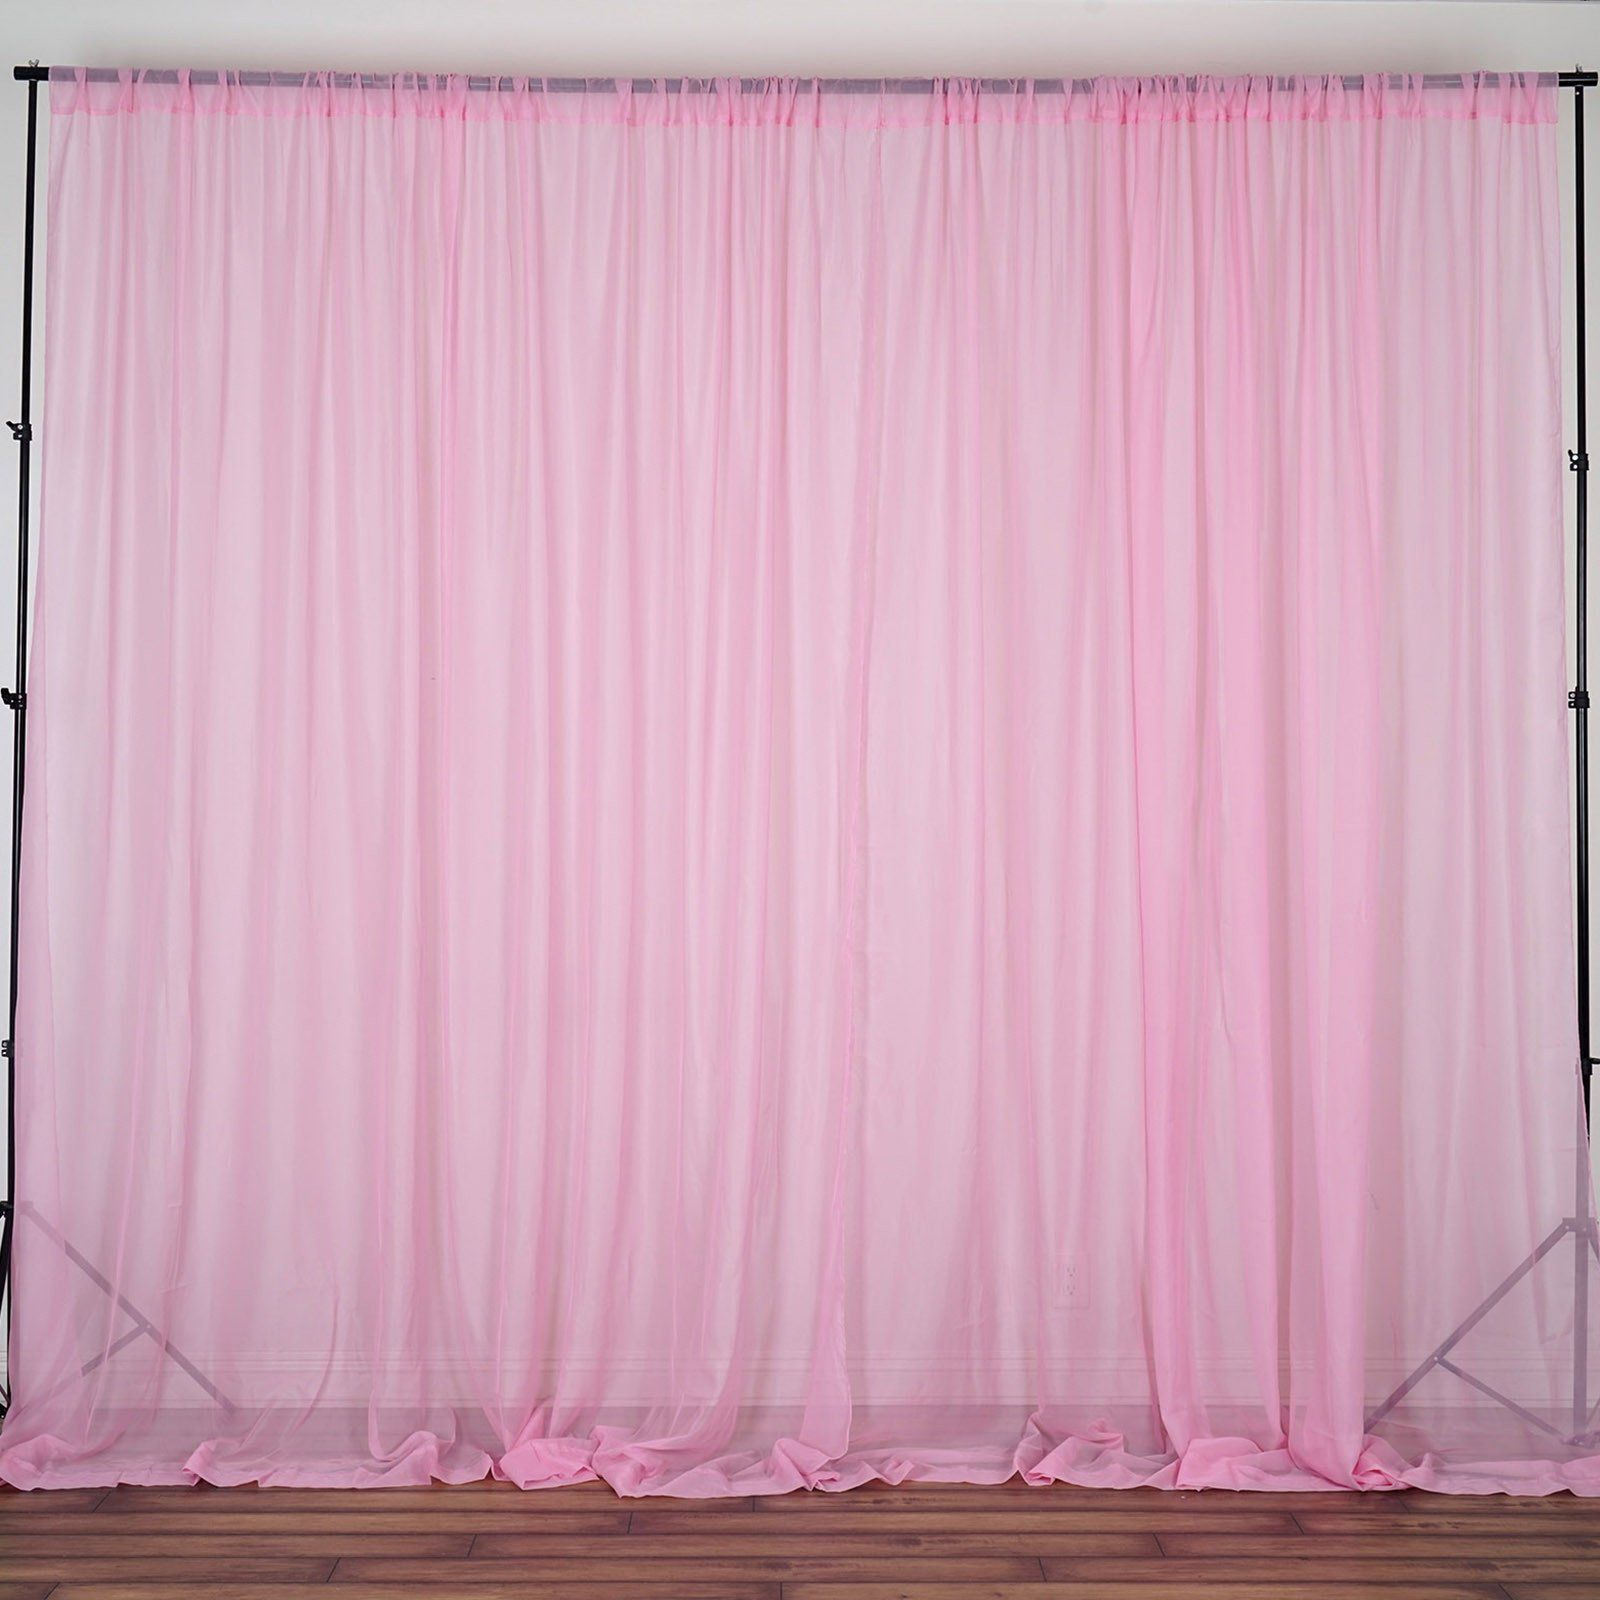 Pack Of 2 5ftx10ft Pink Fire Retardant Sheer Organza Premium Curtain Panel Backdrops With Rod Pockets Panel Curtains Curtains Pink Curtains